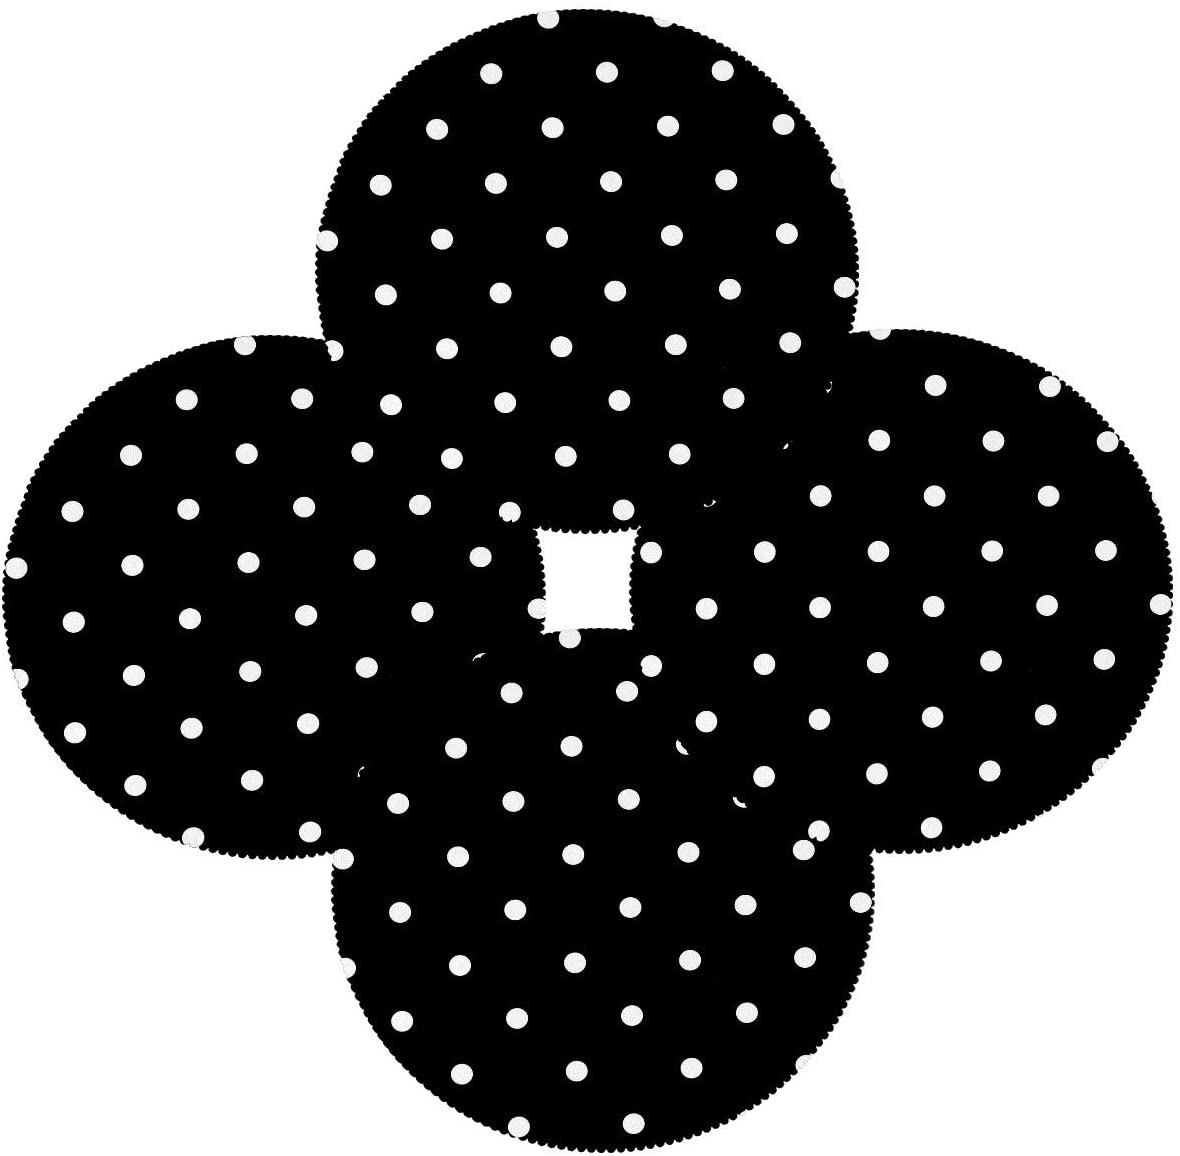 FCZ White Black Polka Dot Set of 4 Round Place Mats Heat-Resistant Table Mat Washable Stain Resistant Anti-Skid Polyester Placemats for Kitchen Dining Decoration